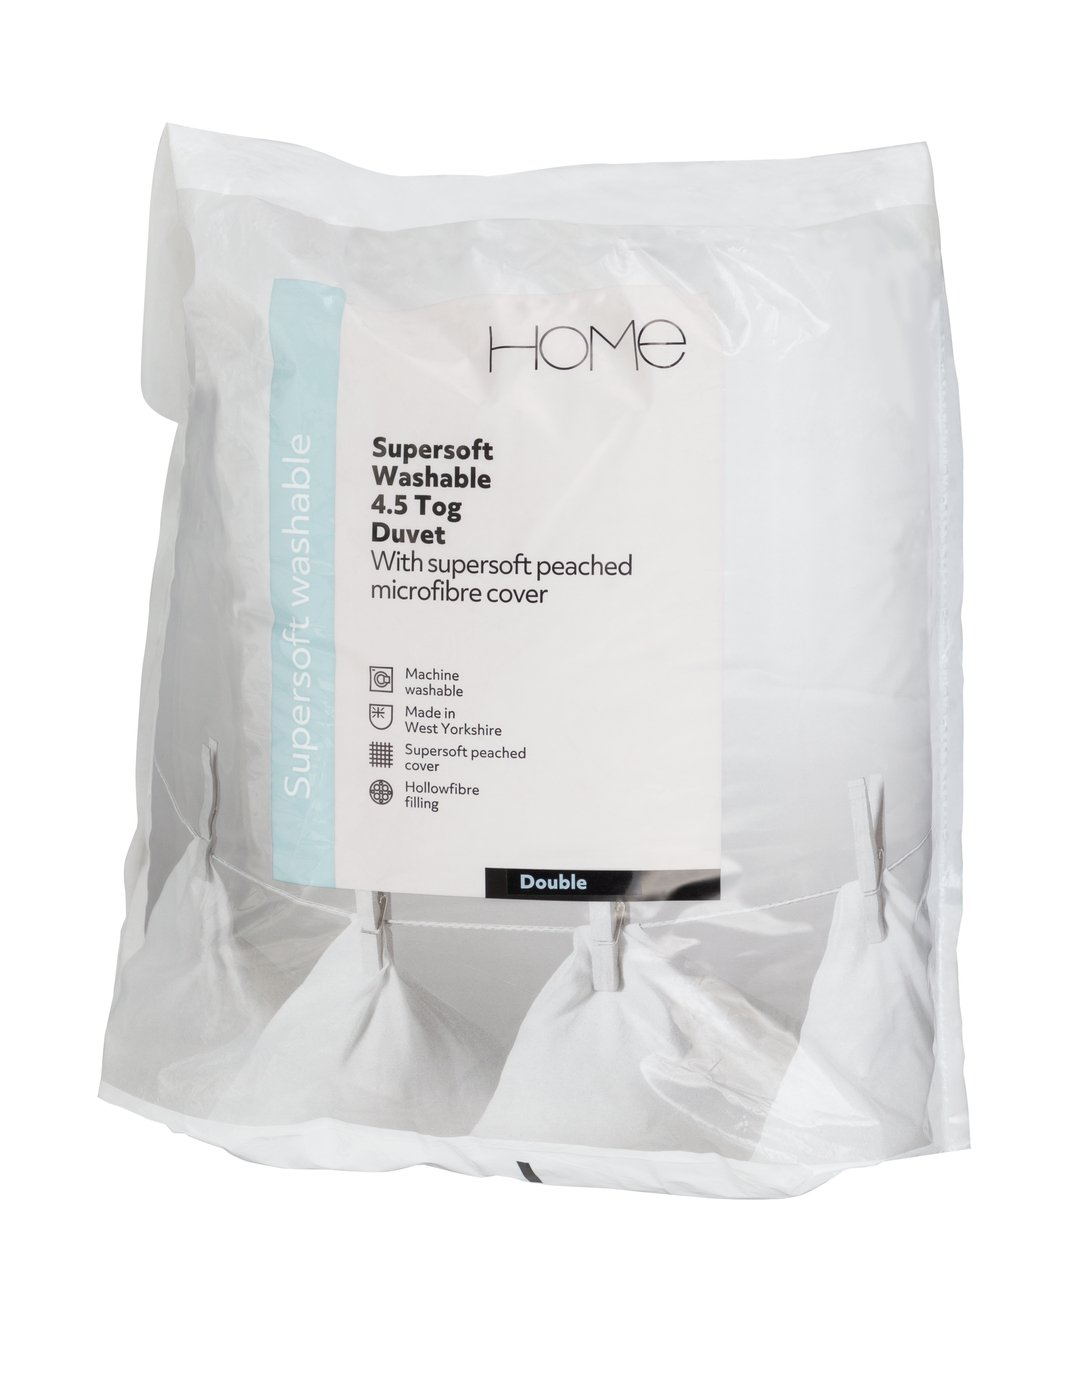 Image of Argos Home Supersoft Washable 4.5 Tog Duvet - Double